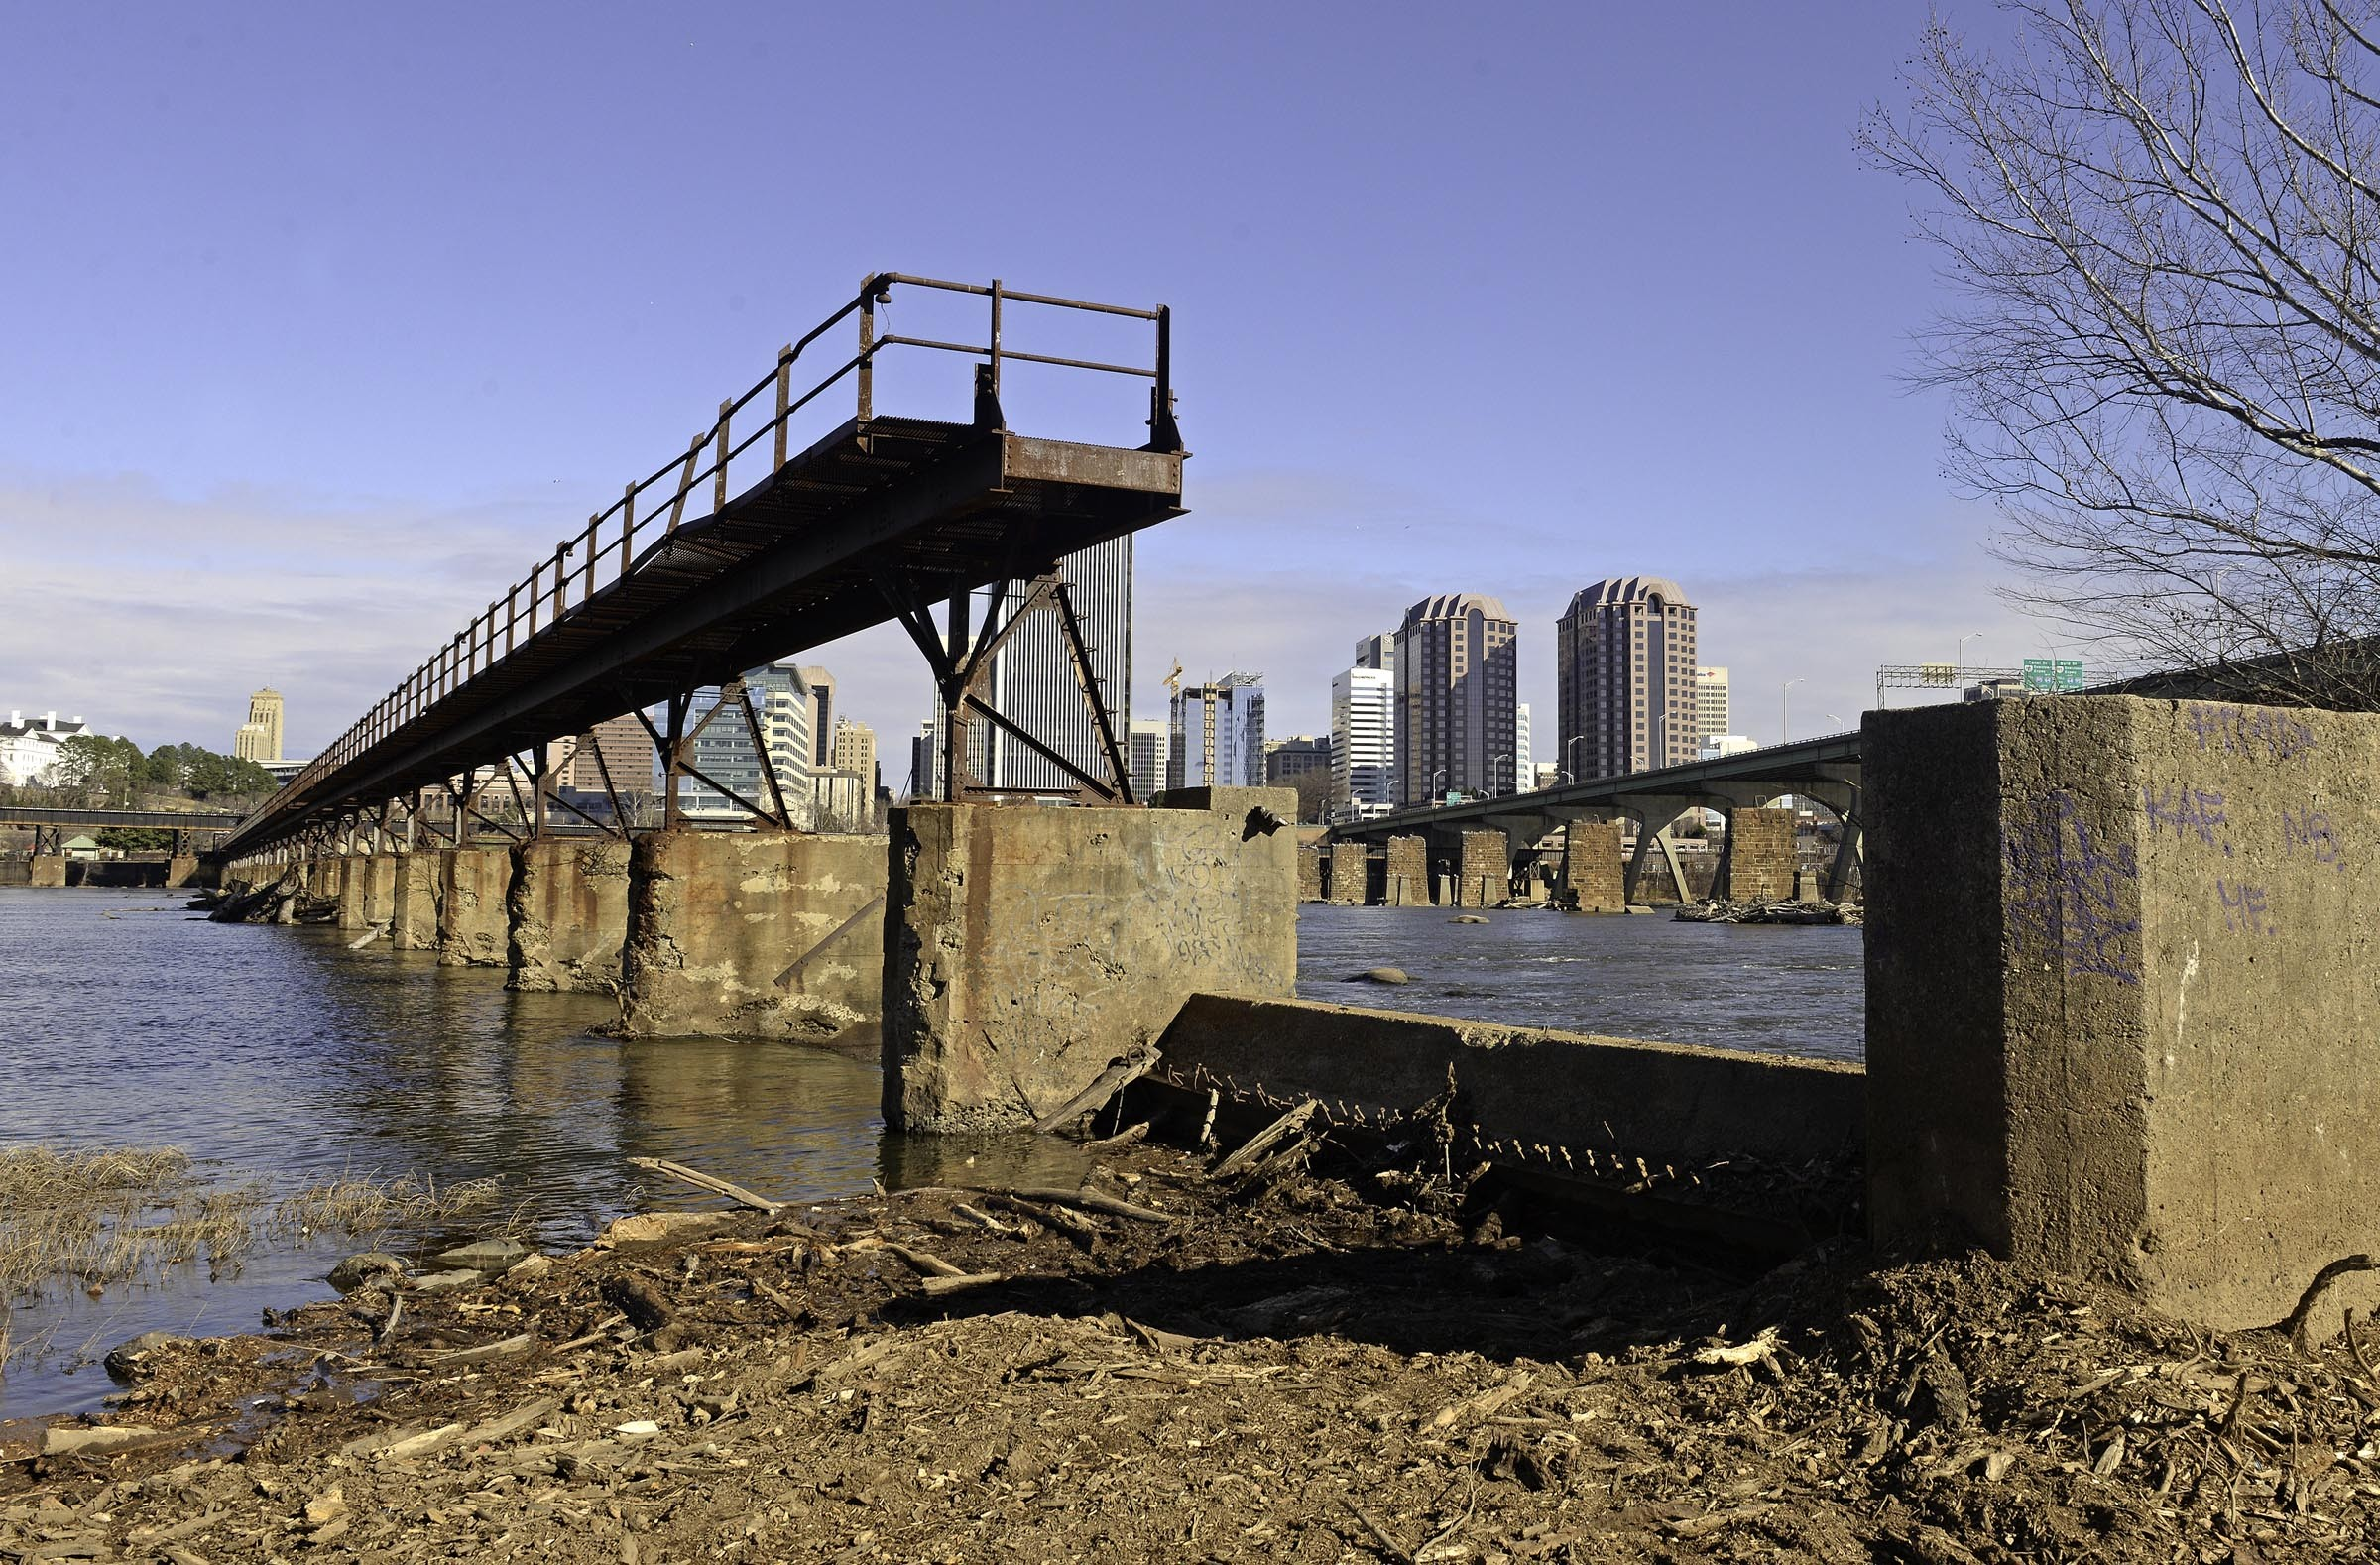 The site of a future pedestrian bridge over the James River, which City Council approved in 2014. - SCOTT ELMQUIST